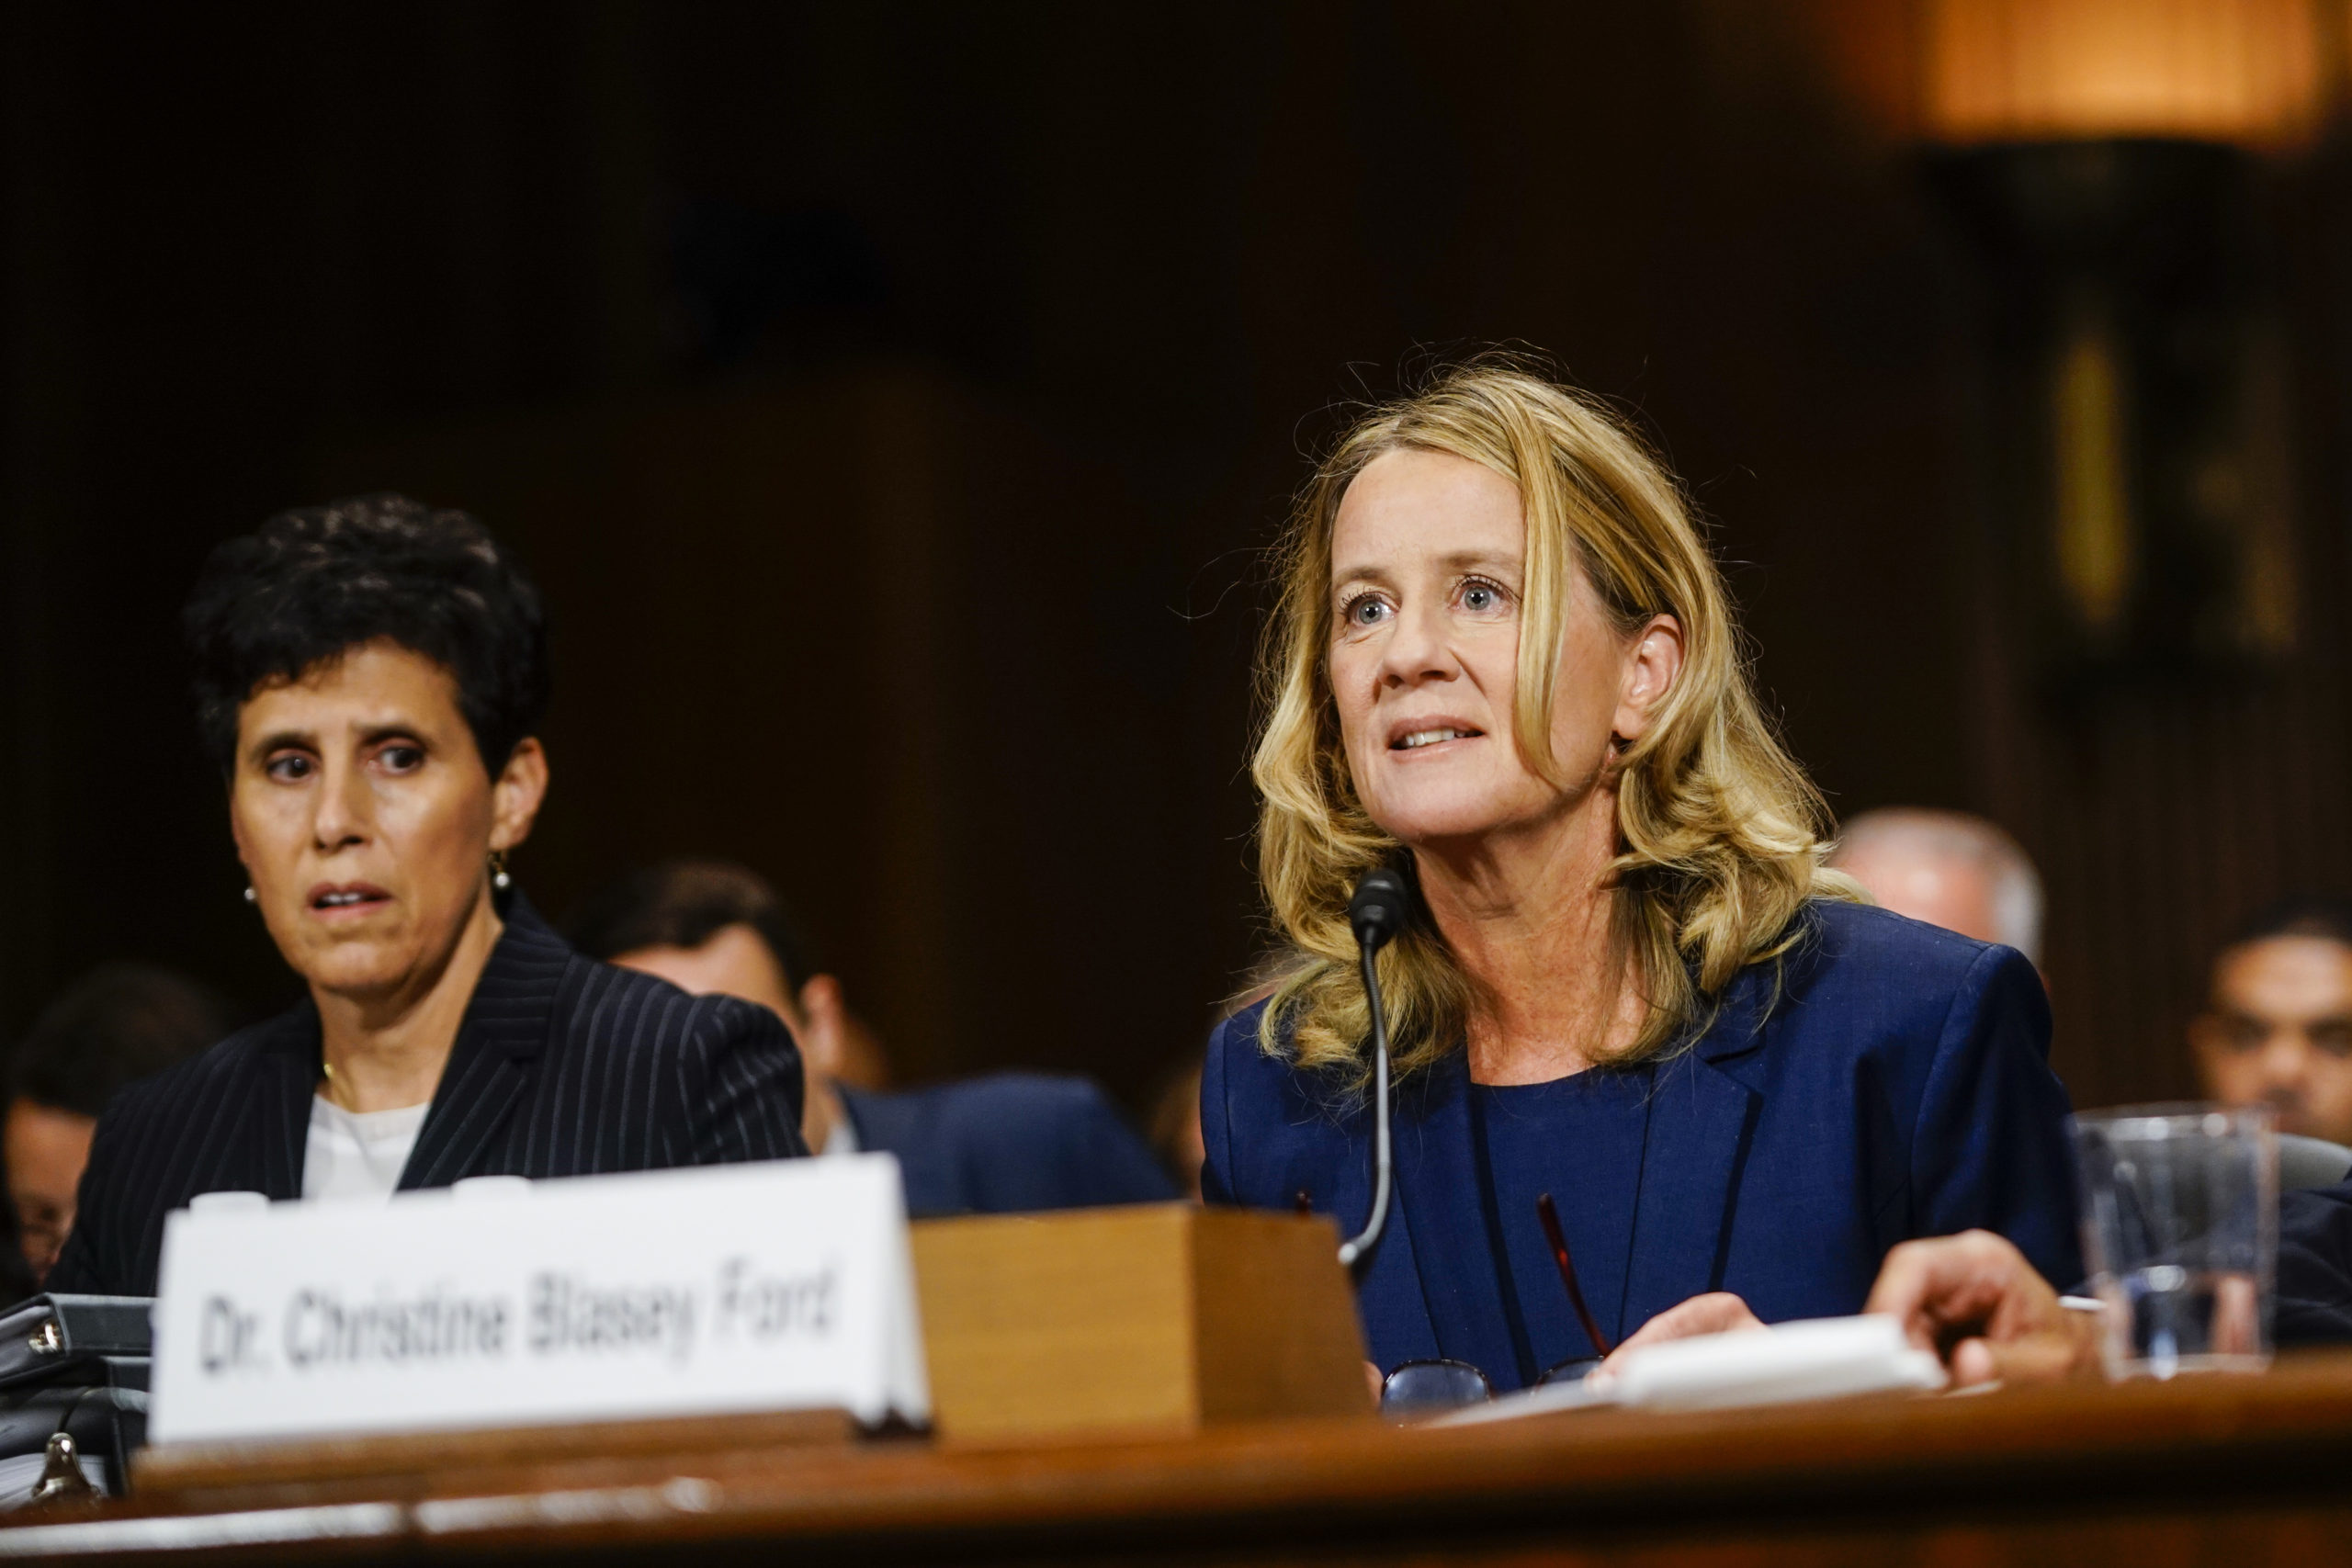 Christine Blasey Ford, with lawyer Debra S. Katz, left, answers questions at a Senate Judiciary Committee hearing on Thursday, September 27, 2018 on Capitol Hill. (Melina Mara-Pool/Getty Images)